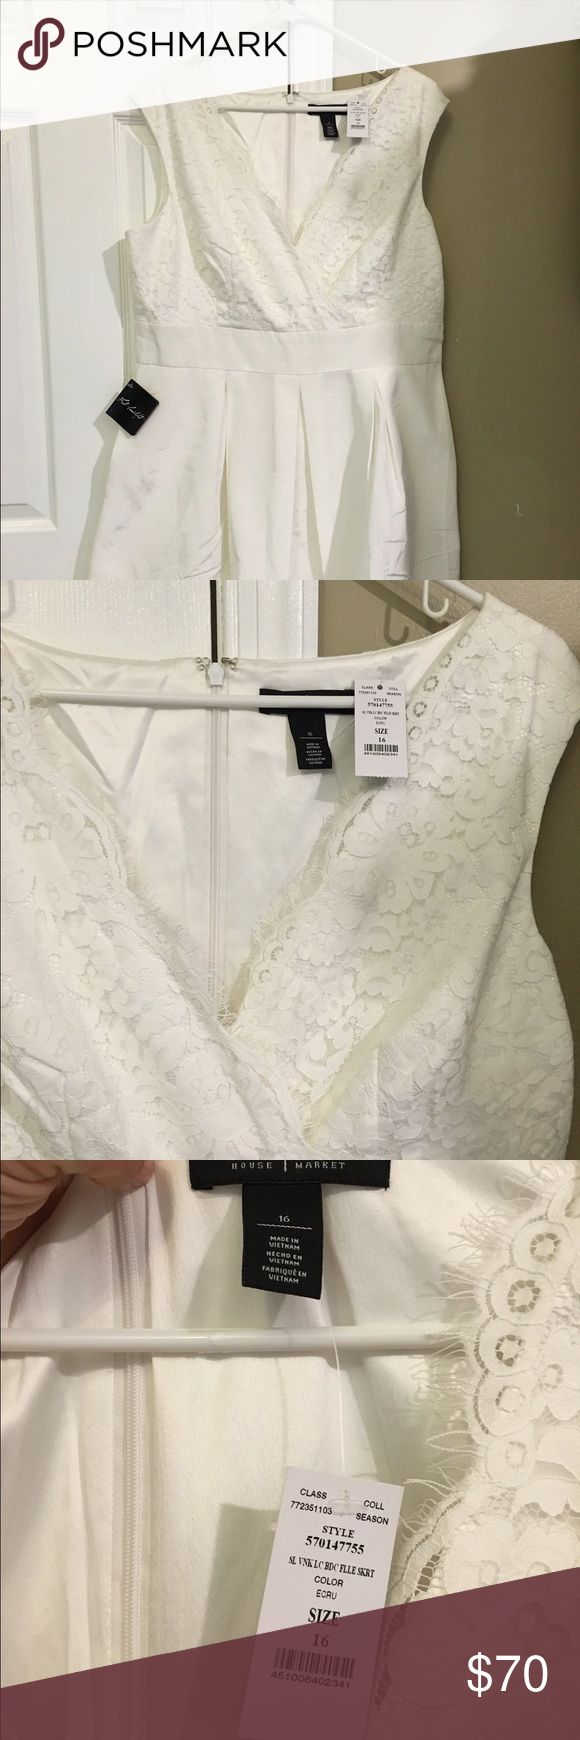 ⚡PRICE DROP⚡️ WHBM lace crossover w/ POCKETS! Temporary price drop! NWT WHBM white dress with lace crossover top. A-line dress with pockets! Great wedding dress for a casual bride or for summer parties! White House Black Market Dresses